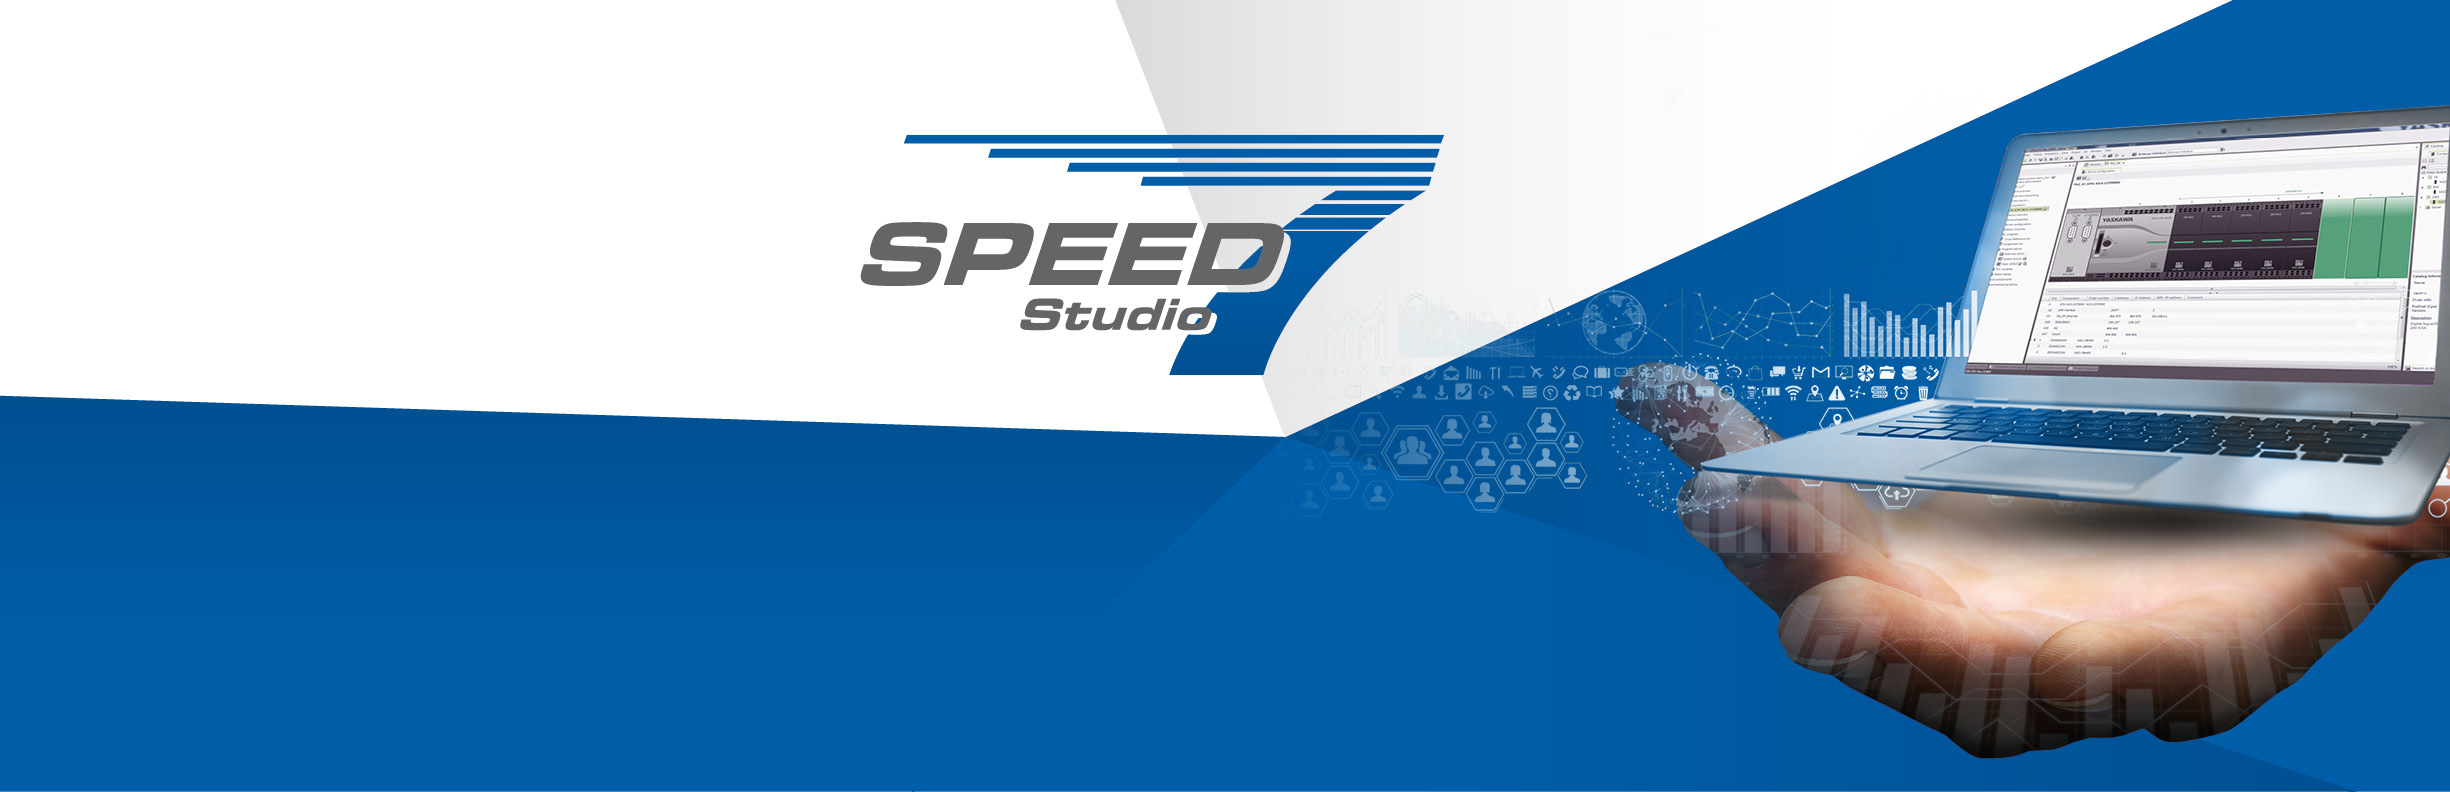 Speed7 Studio Yaskawa Vipa Controls